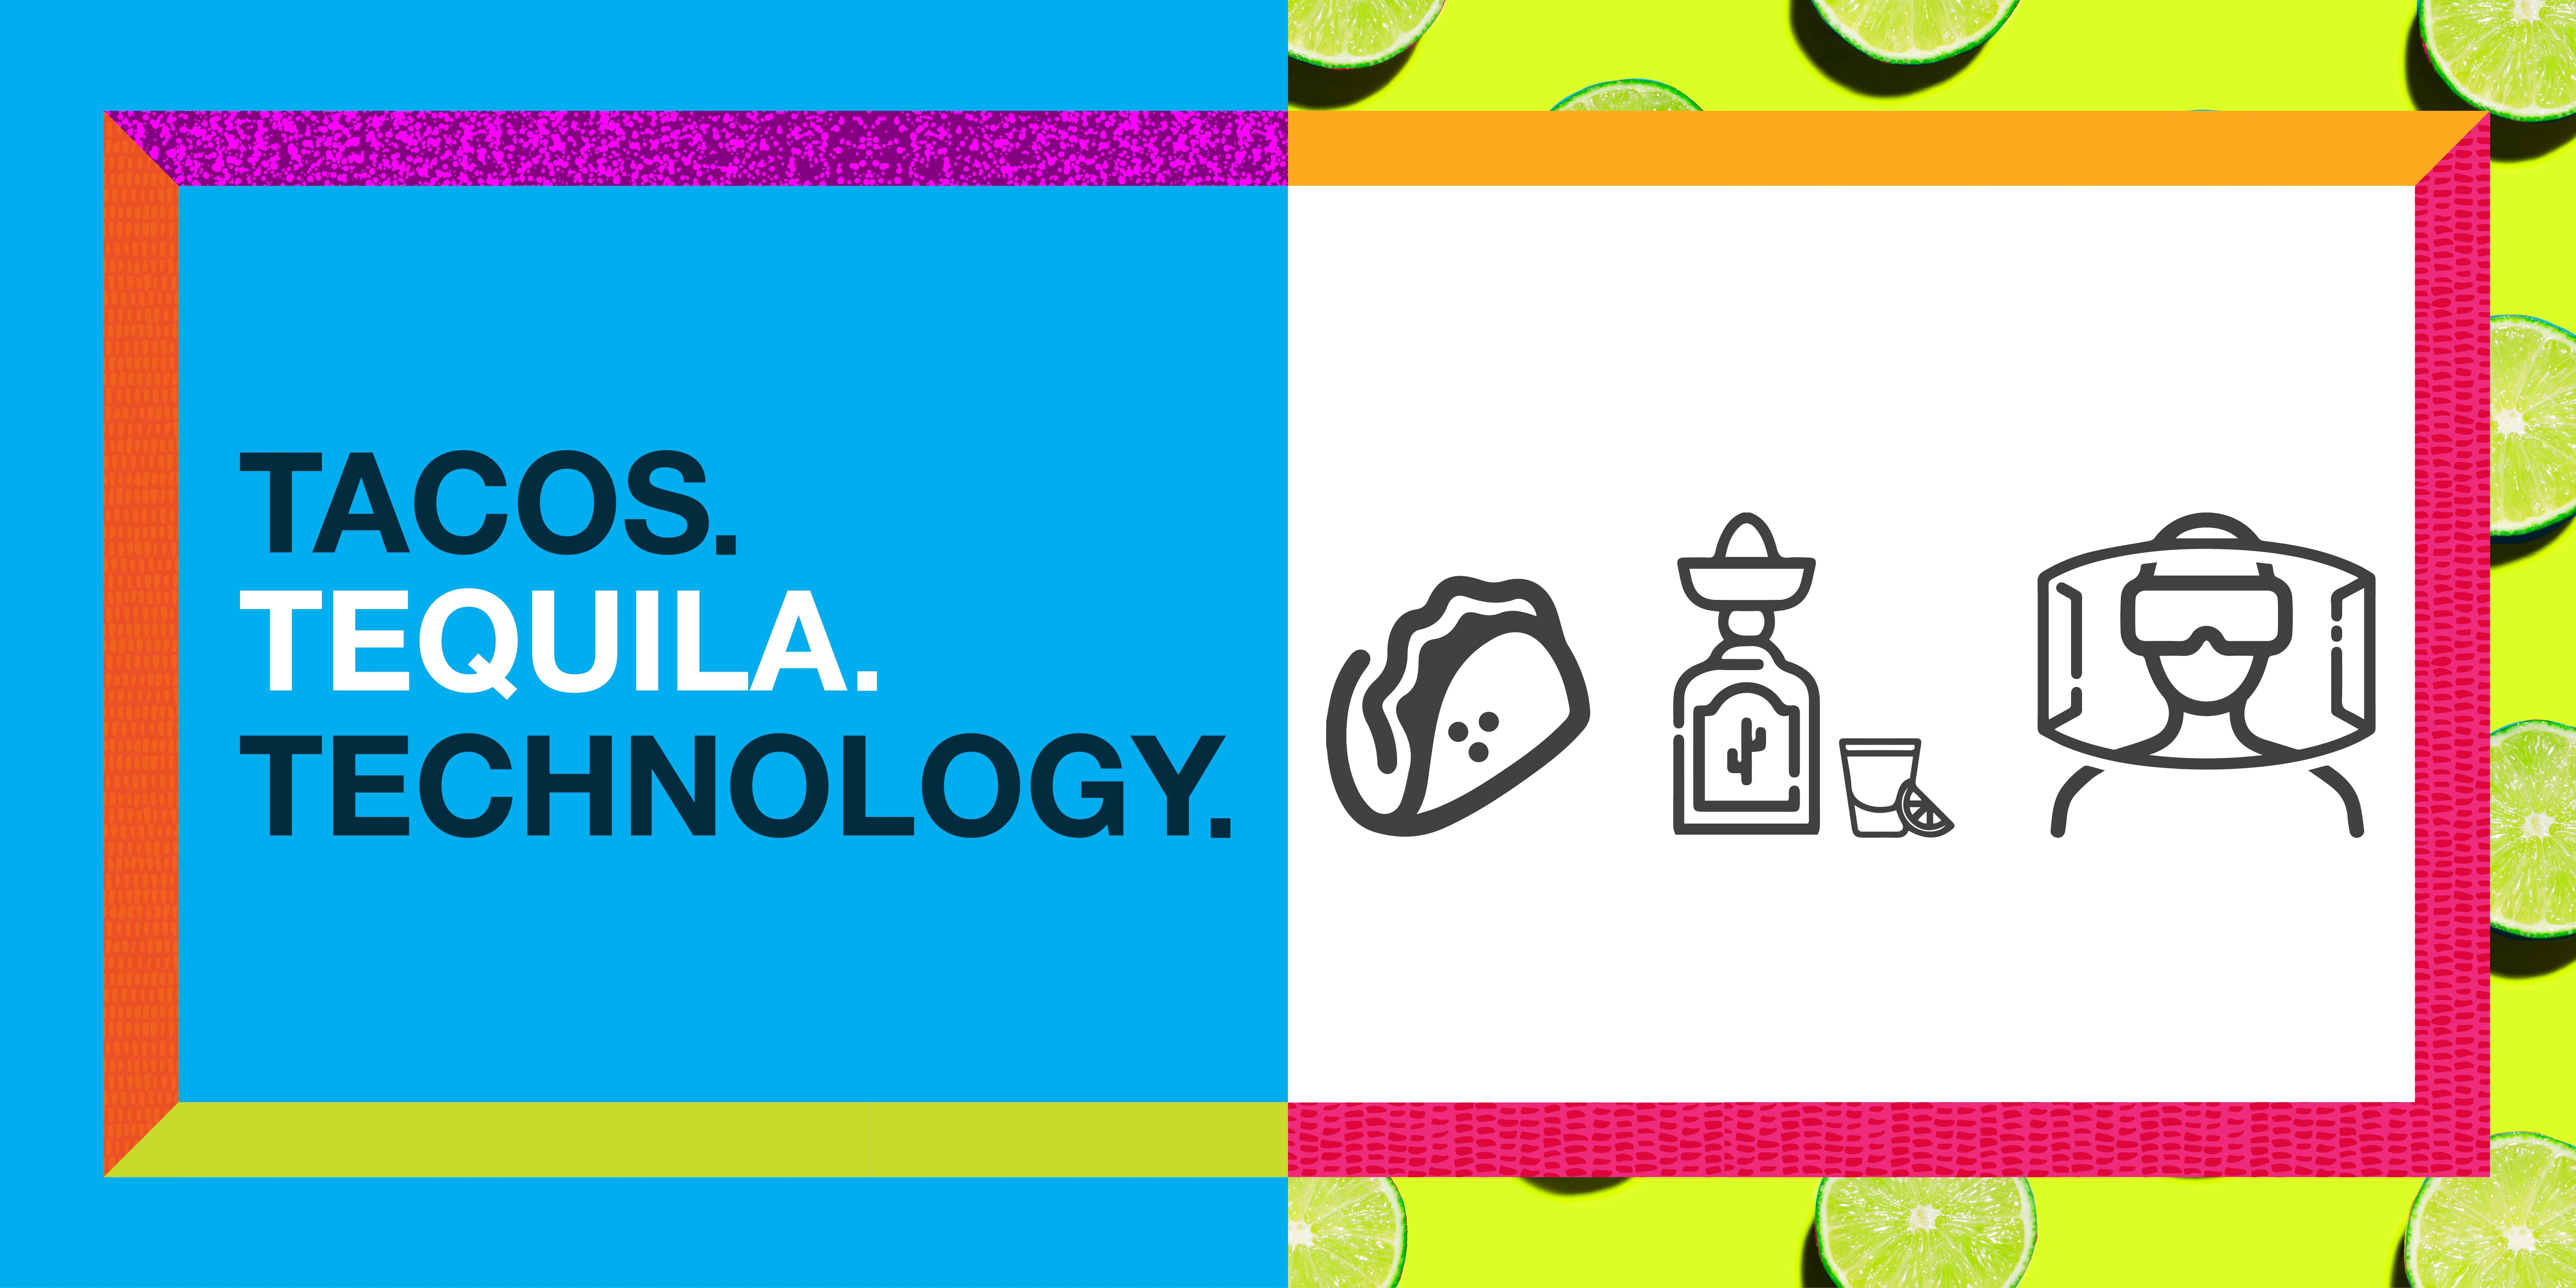 TACOS. TEQUILA. TECHNOLOGY.